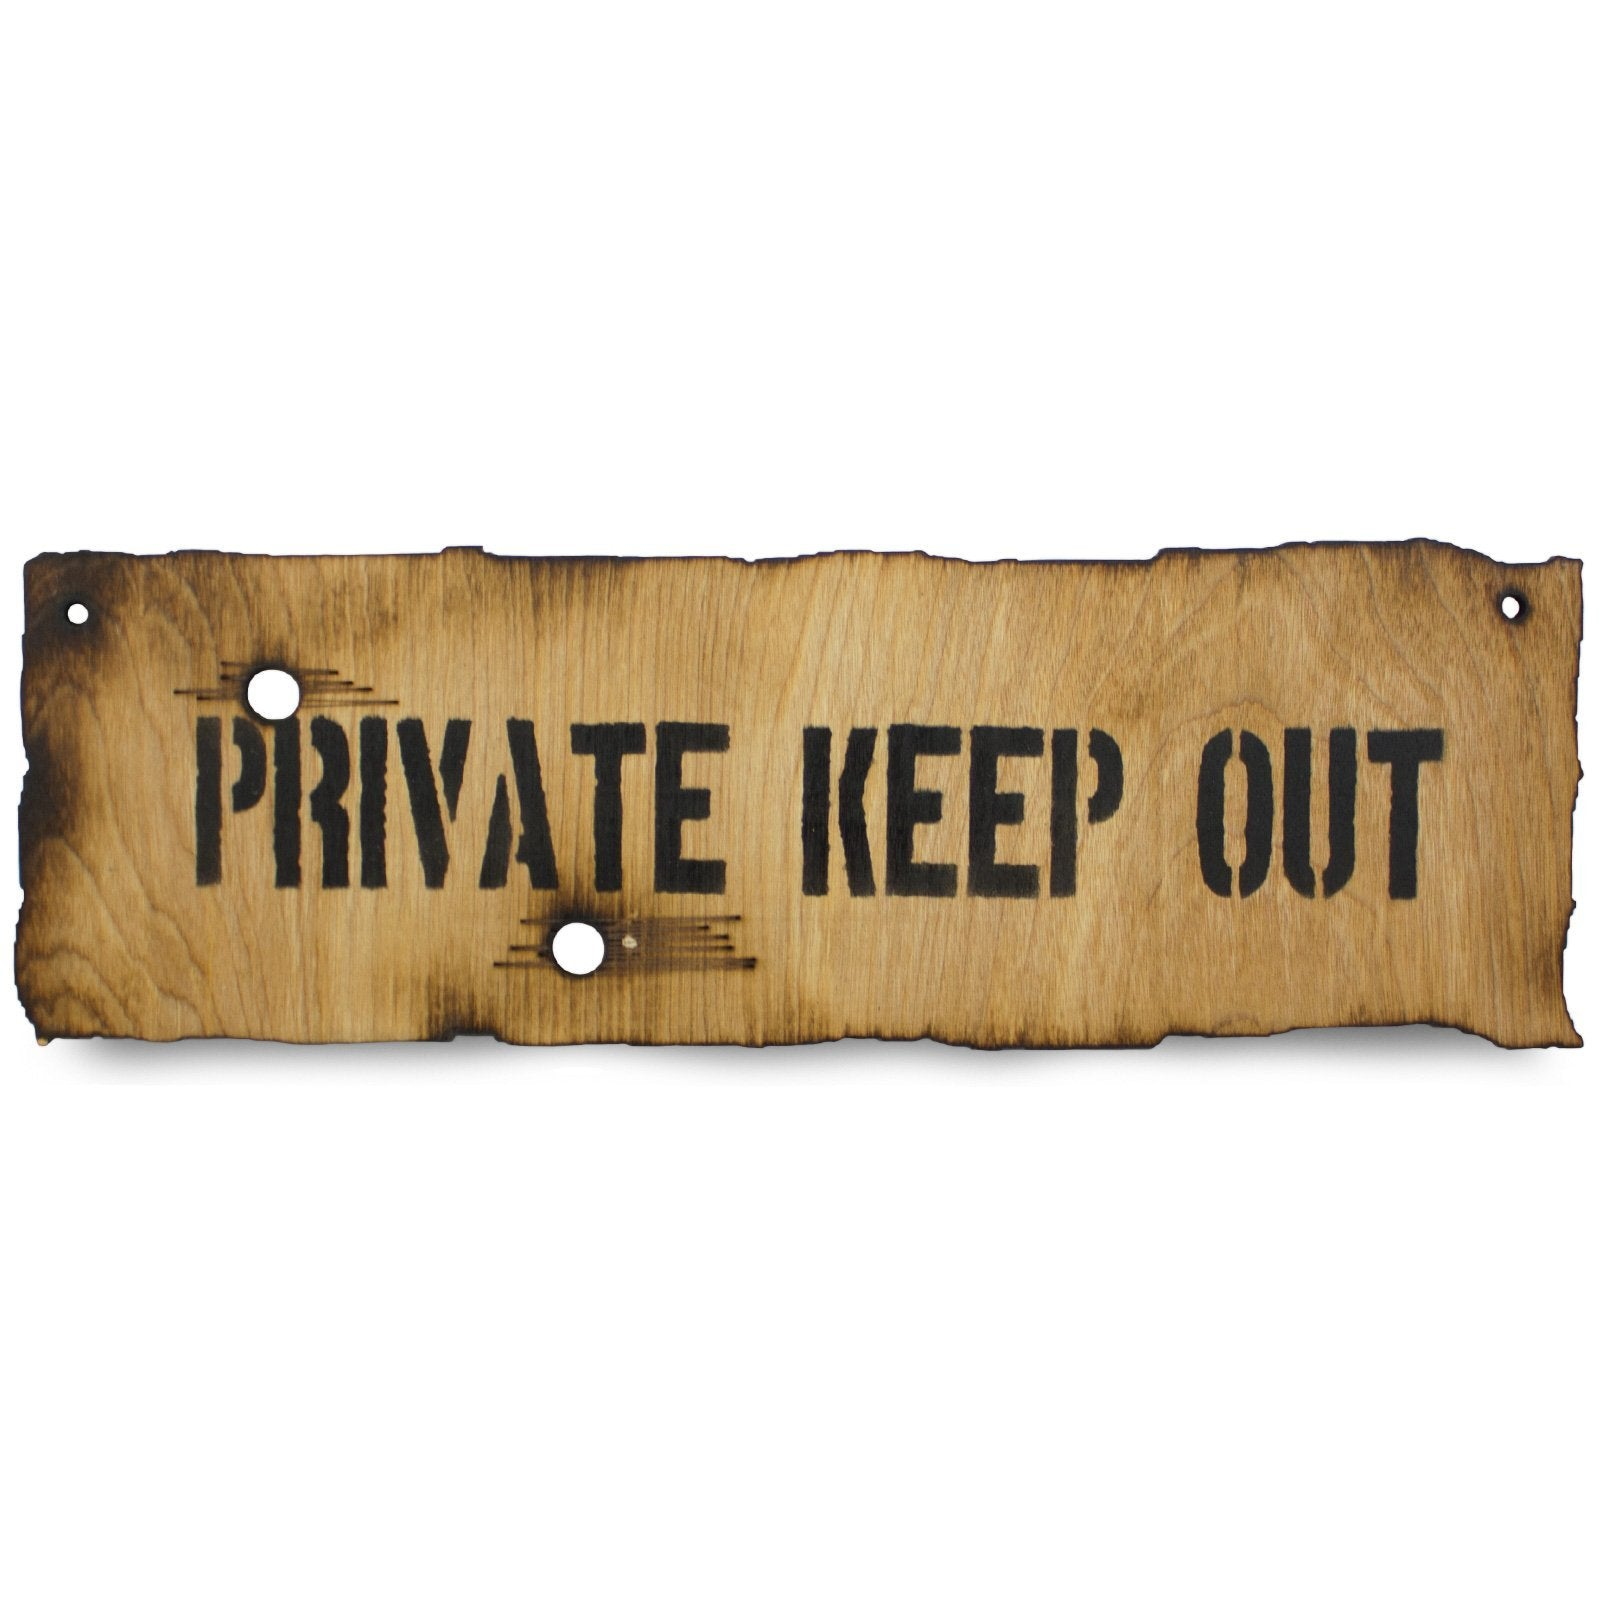 Private Keep Out Wooden Warning Sign | UKMCPro